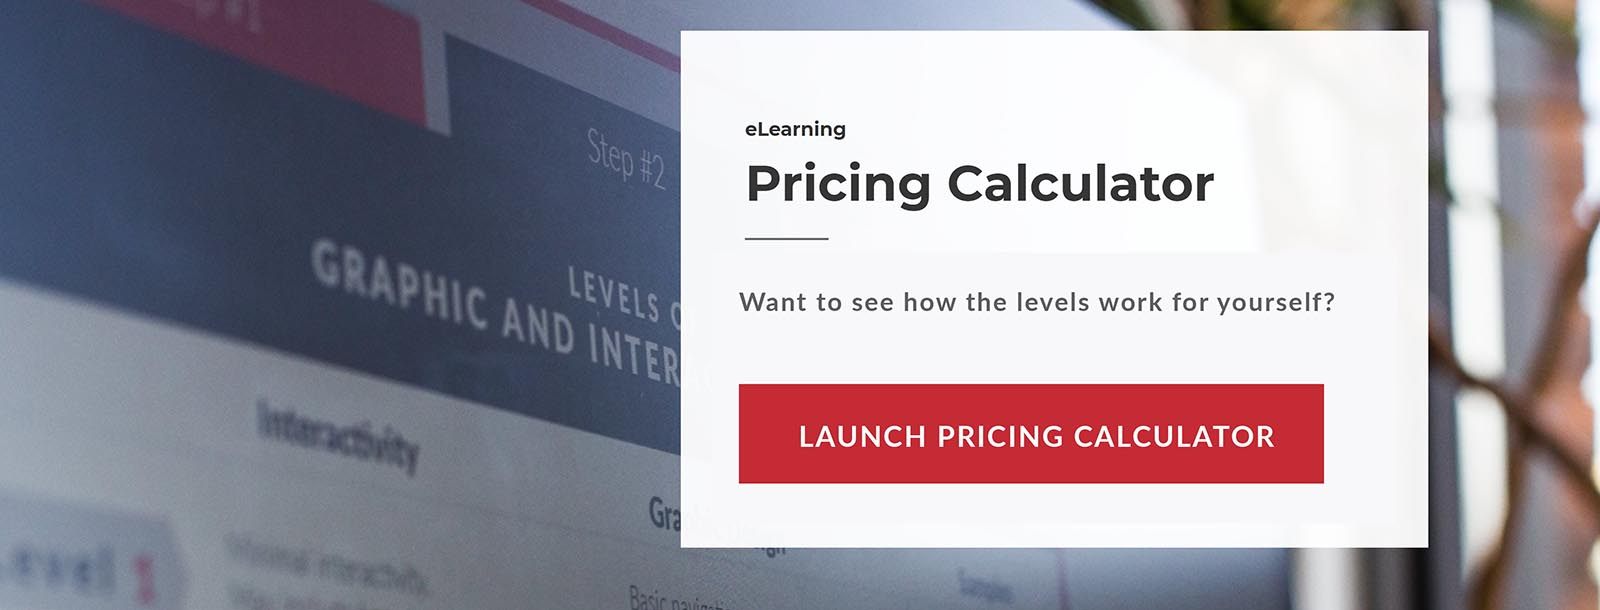 eLearning-Pricing-Calculator